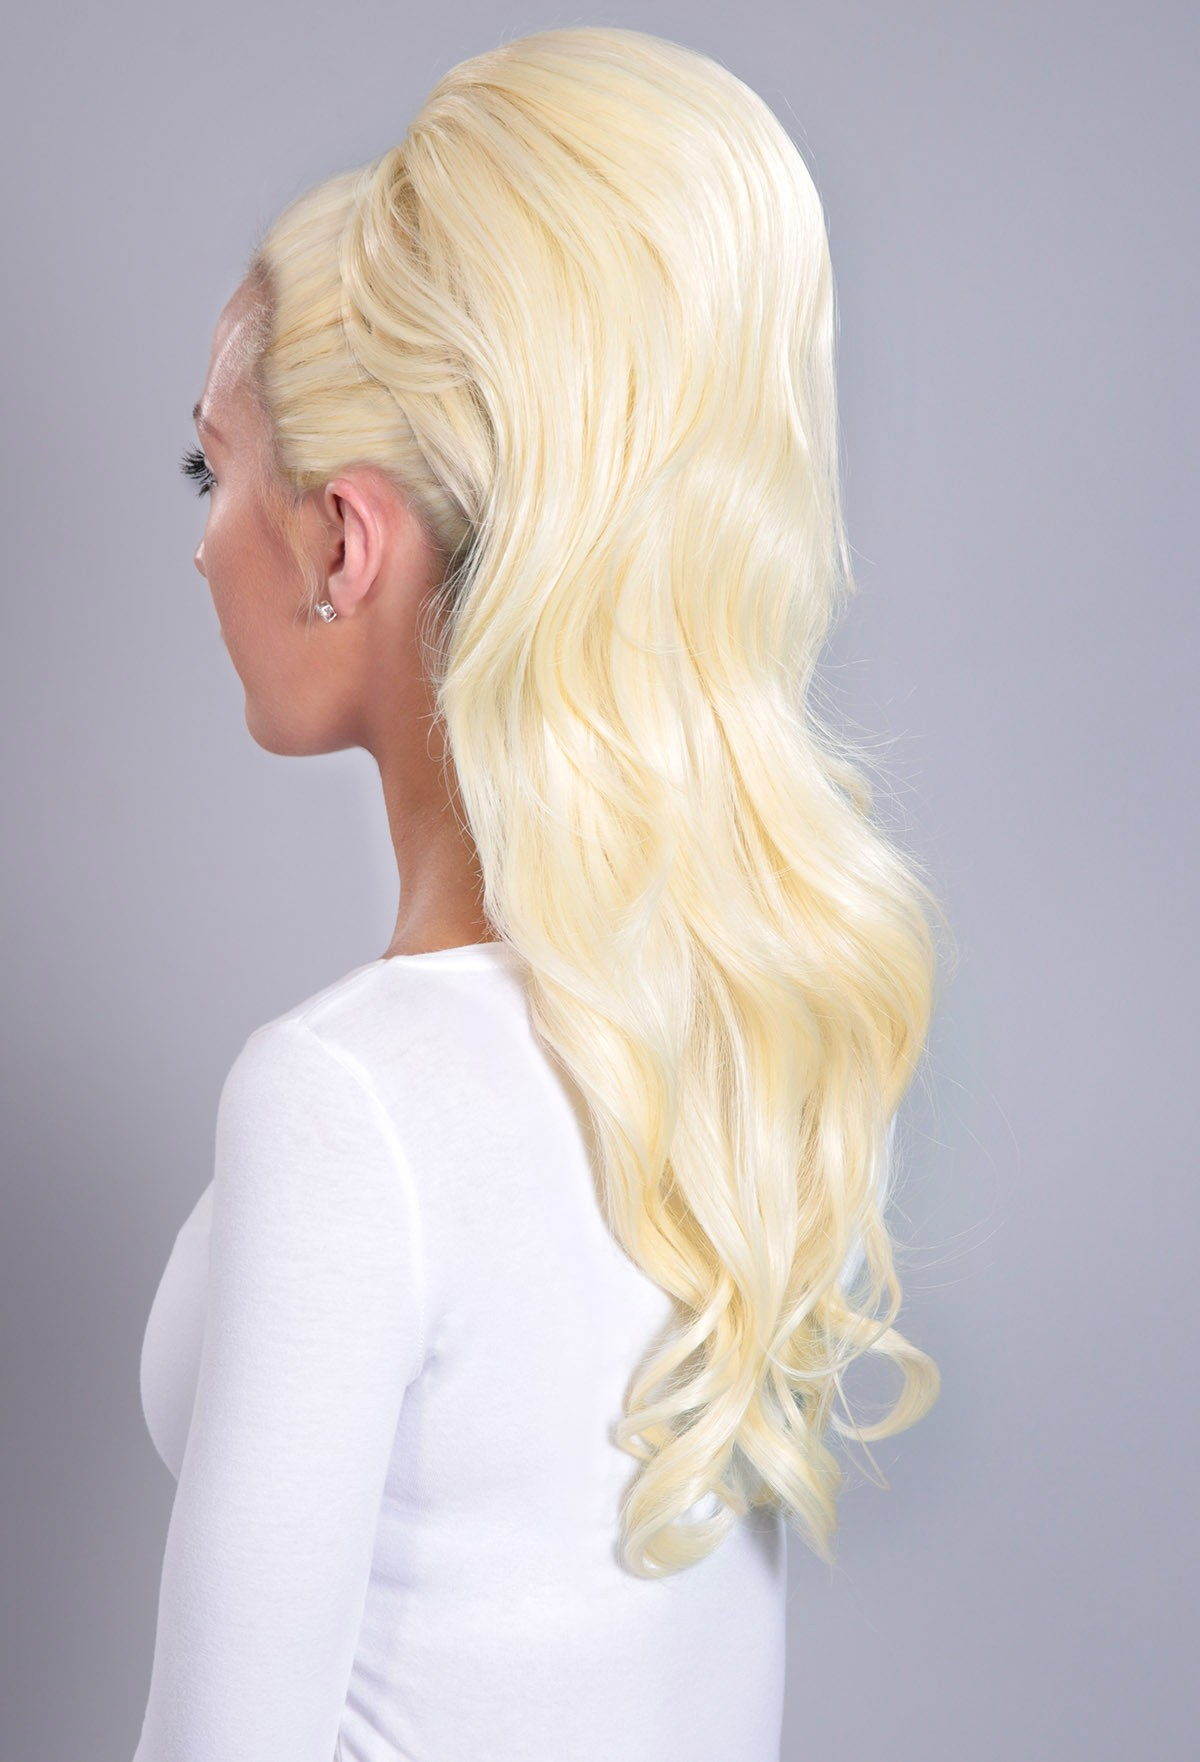 Extreme Volume Pure Blonde #613 Curly Cl-Extreme Volume Pure Blonde #613 Curly Clip In Ponytail-3